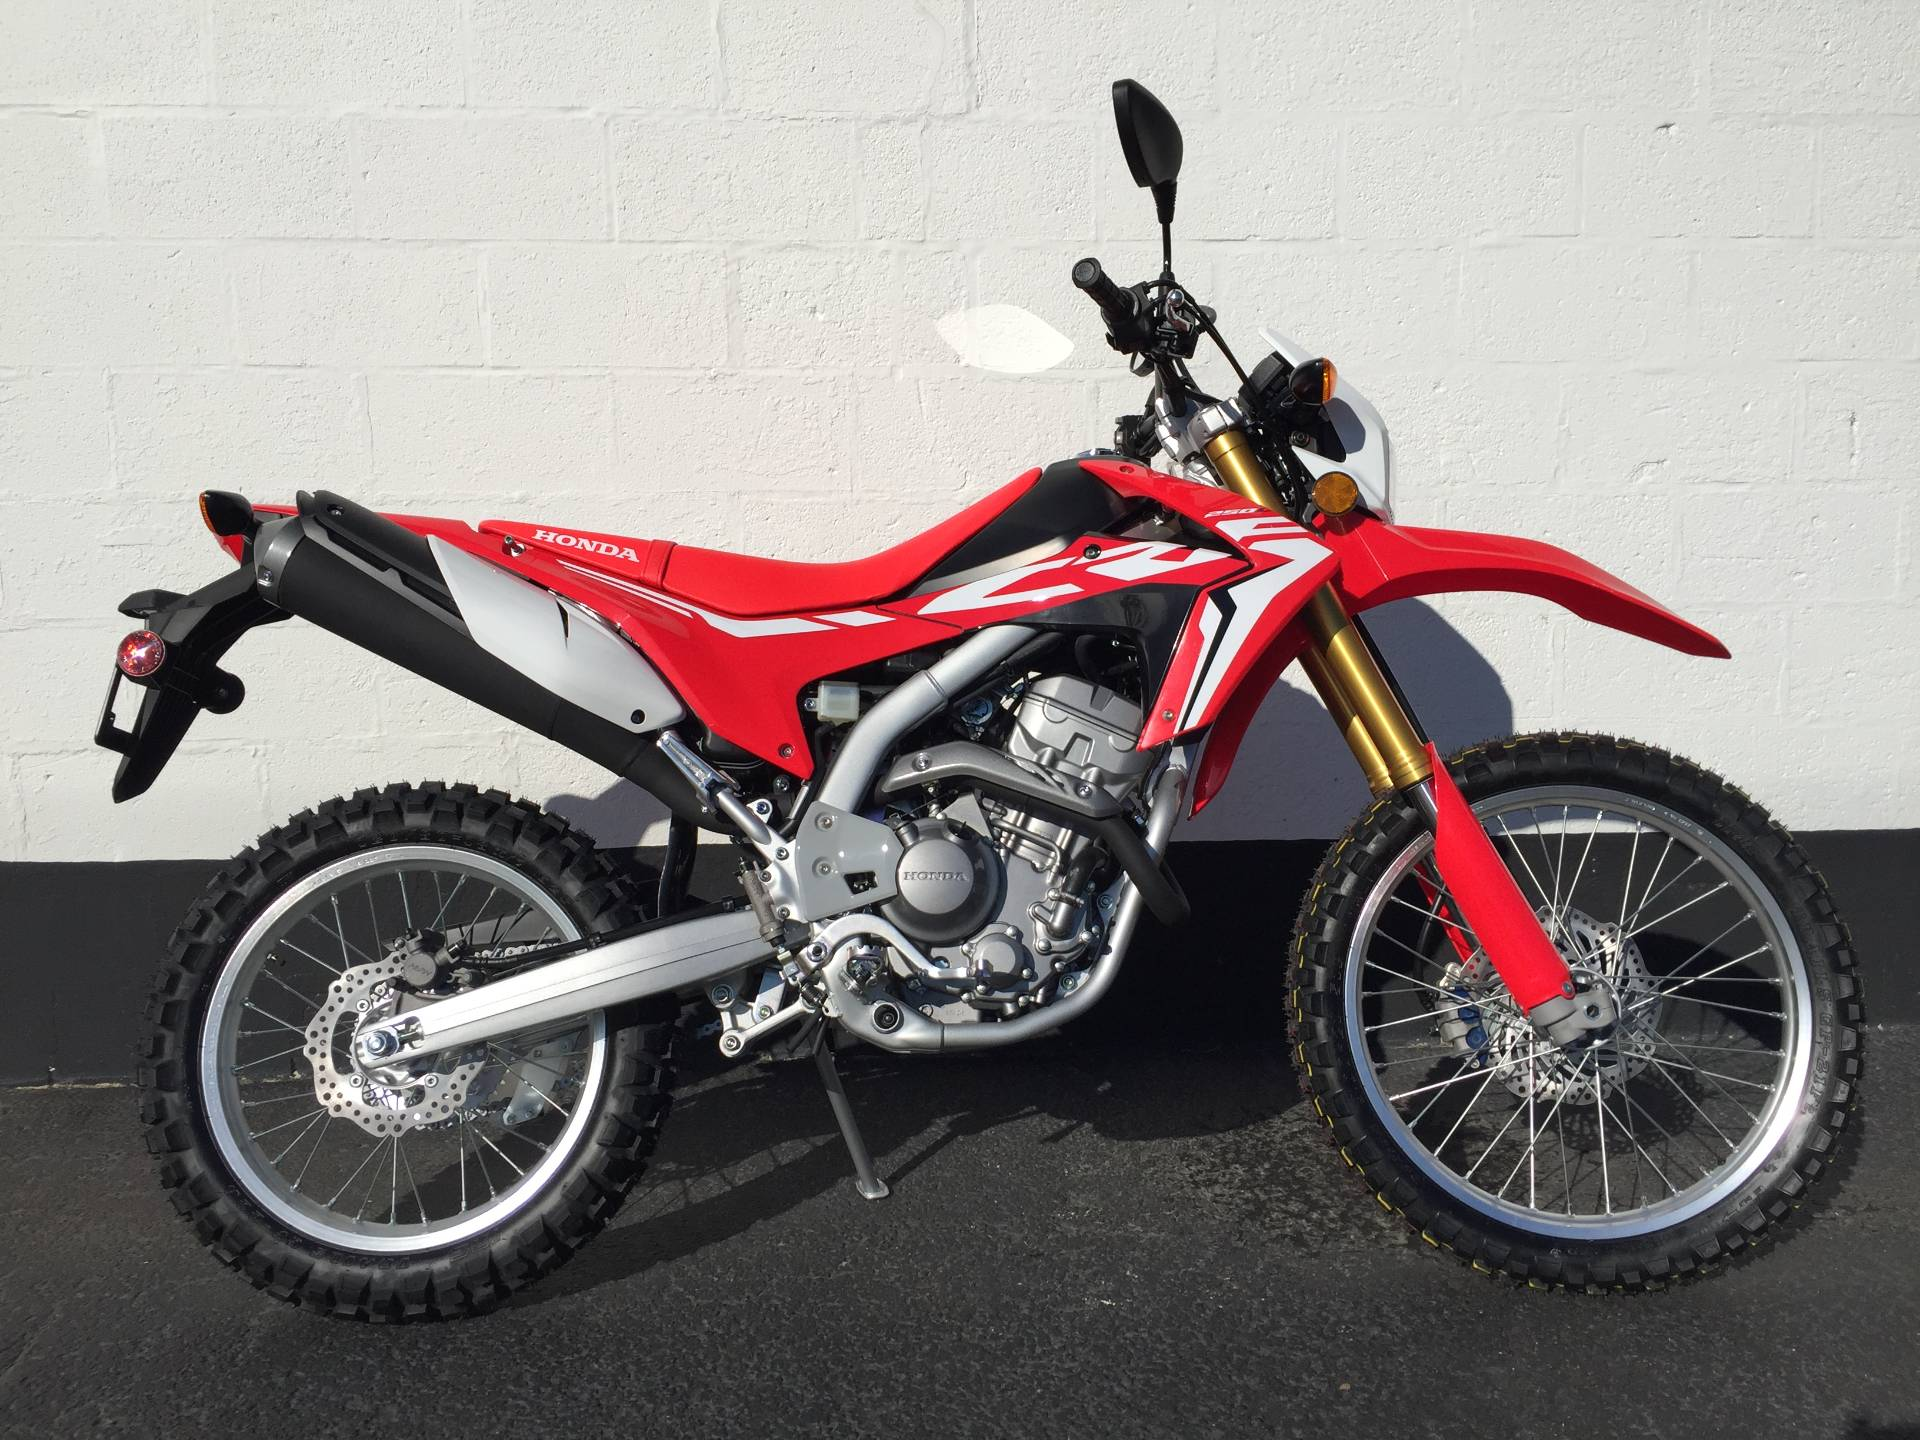 New 2018 Honda Crf250l Motorcycles In Aurora Il Stock Number H18193 1970 Motorcycle Vin Decoder Illinois